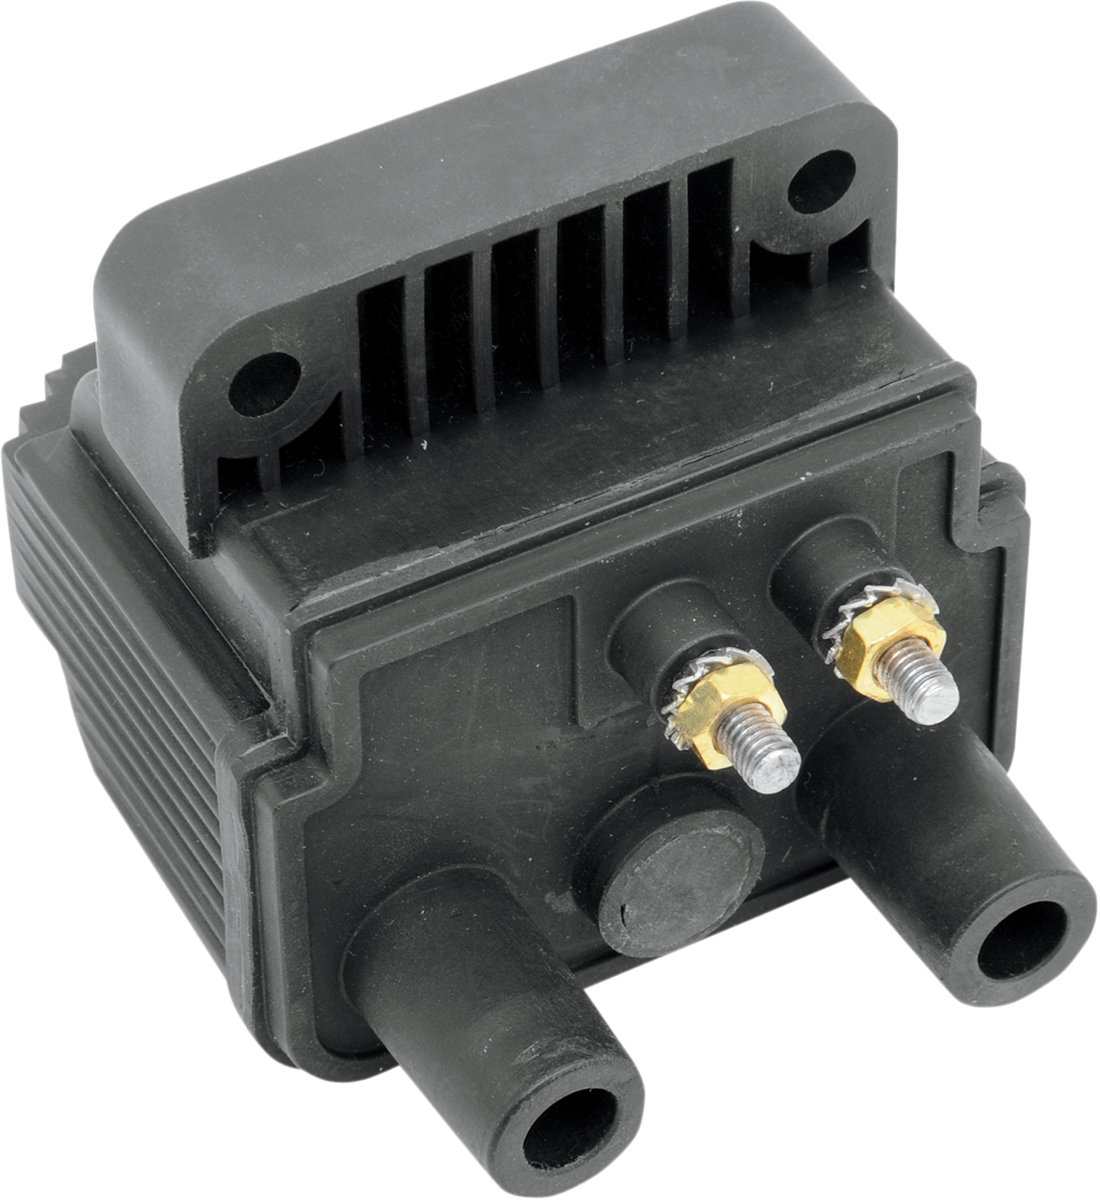 Drag Specialties Black 3 OHM 12V Dual Motorcycle Ignition Coil Harley Davidson